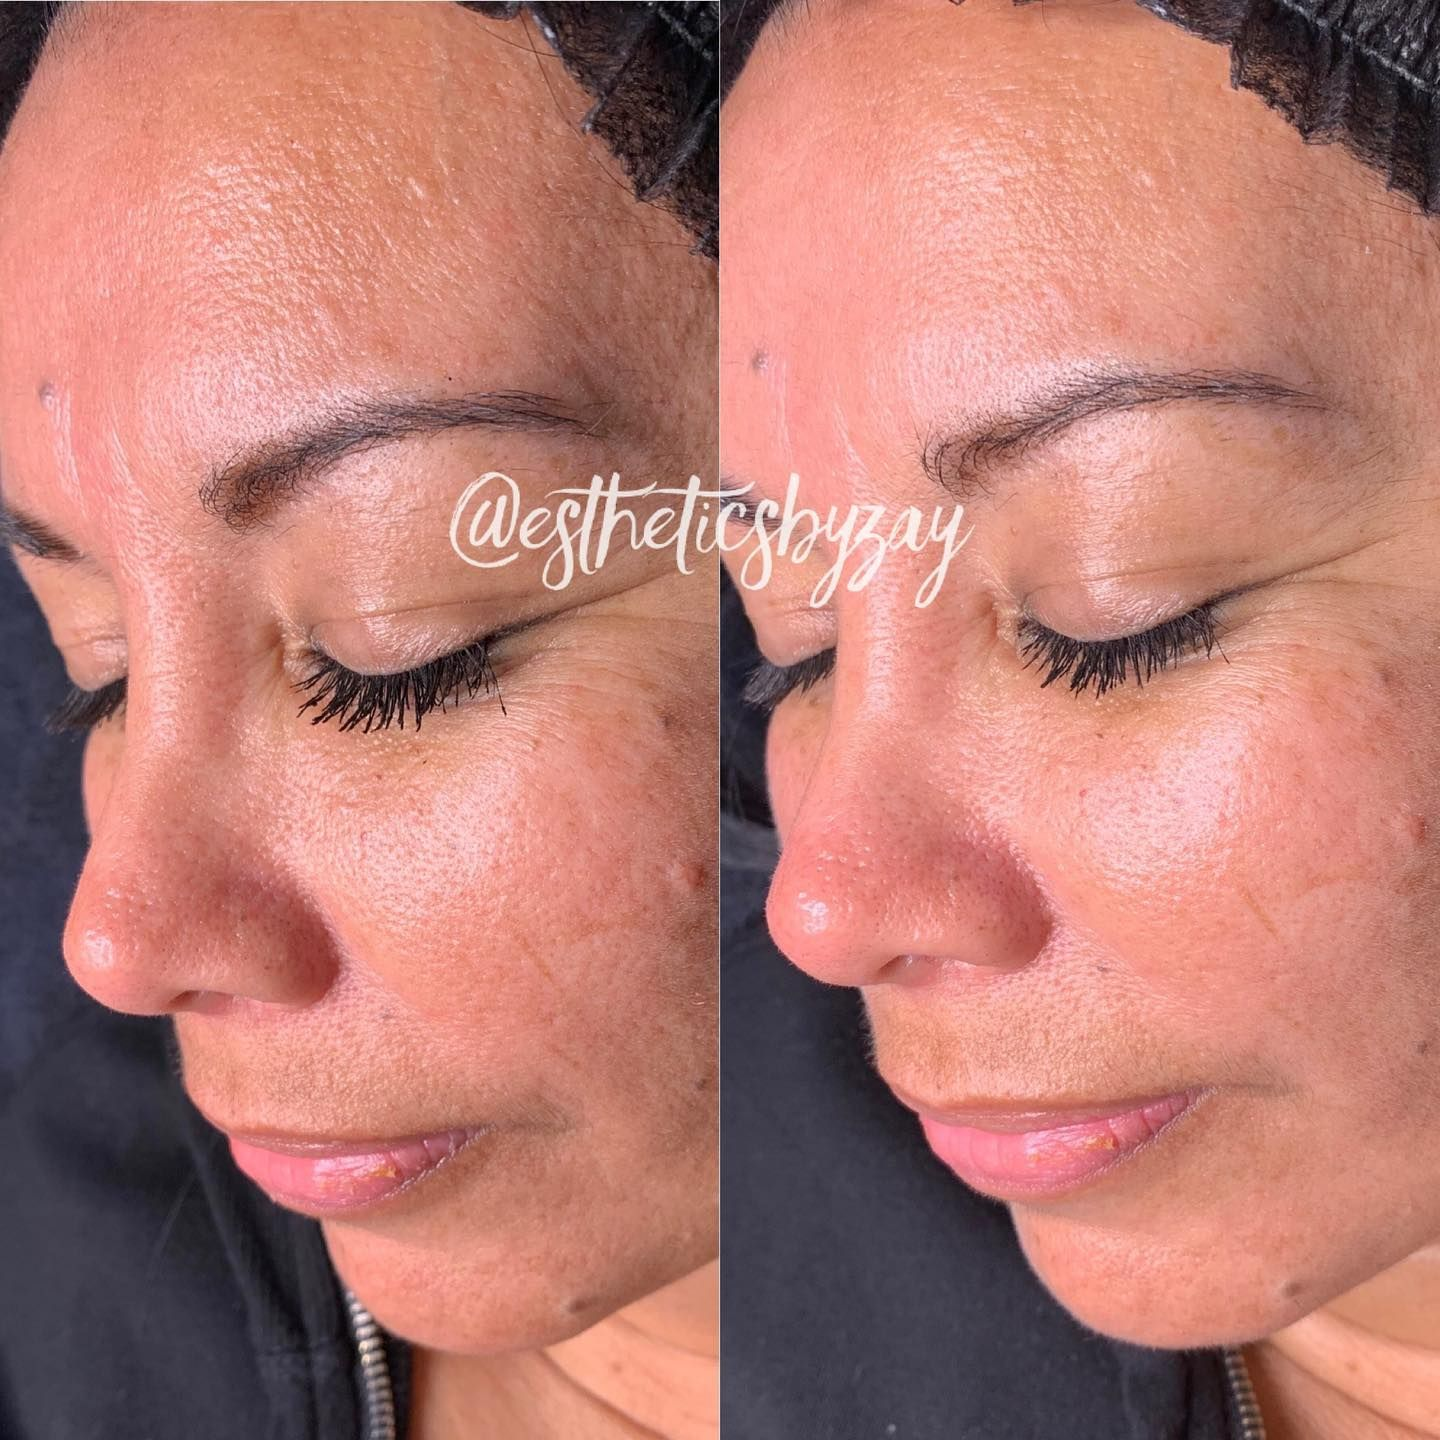 Before After Microdermabrasion Facial With A Custom Jelly Mask I Still Have Openings Available This Week In 2020 Microdermabrasion Facial Microdermabrasion Facial